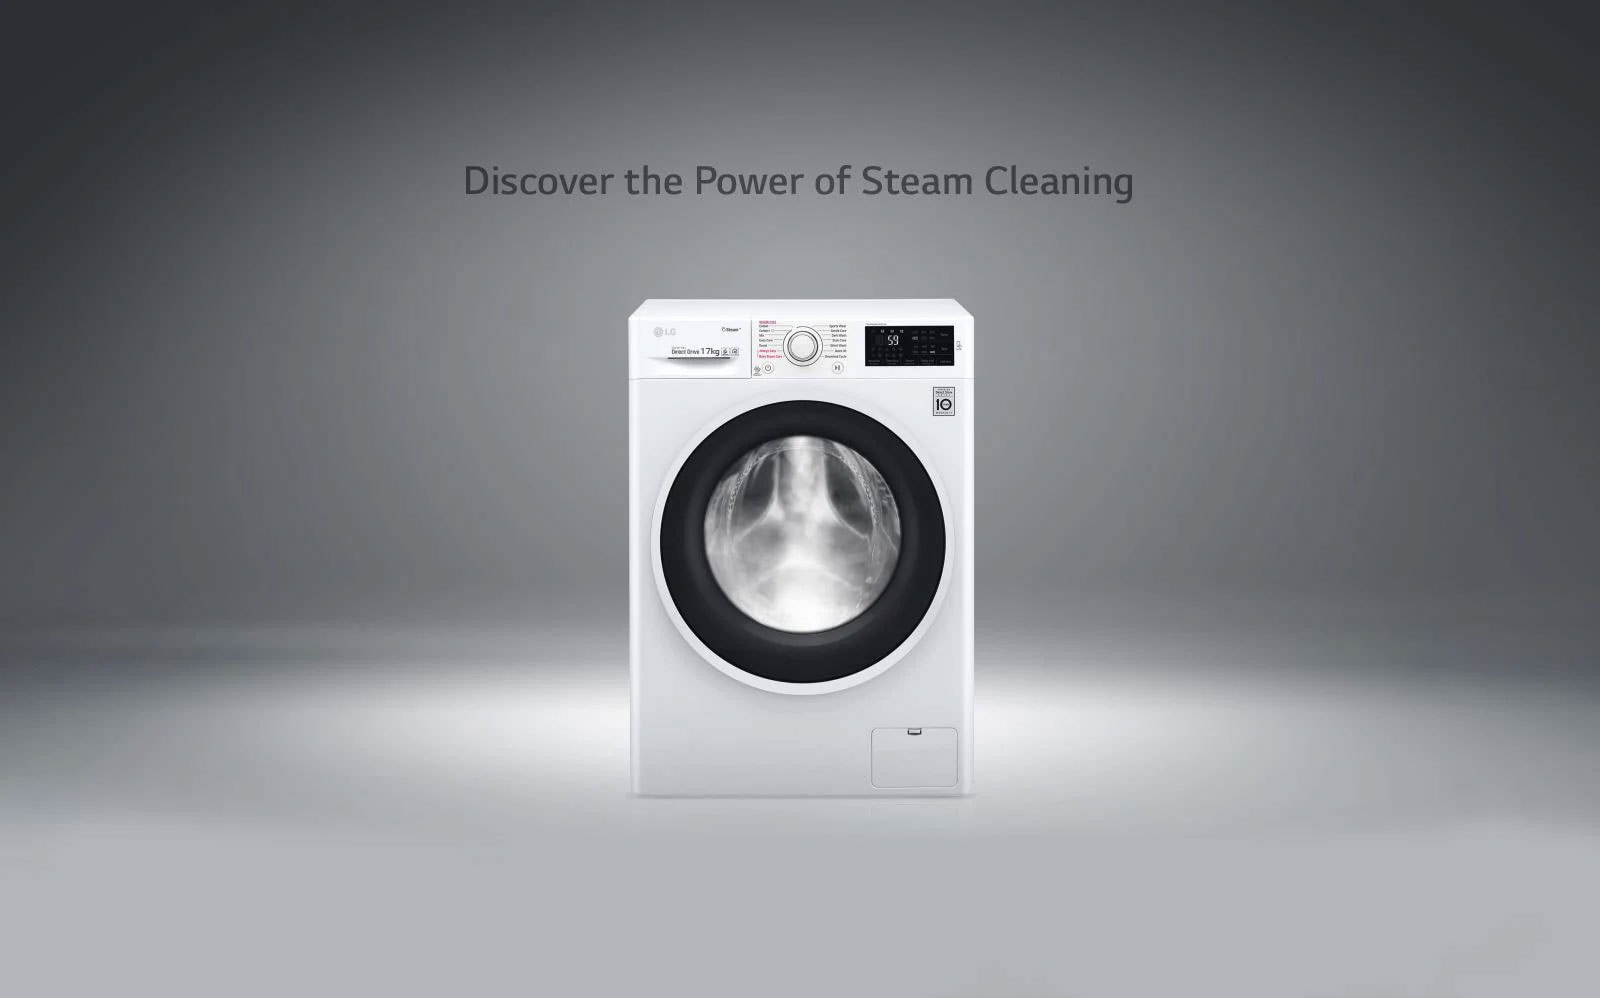 Discover the power of steam cleaning